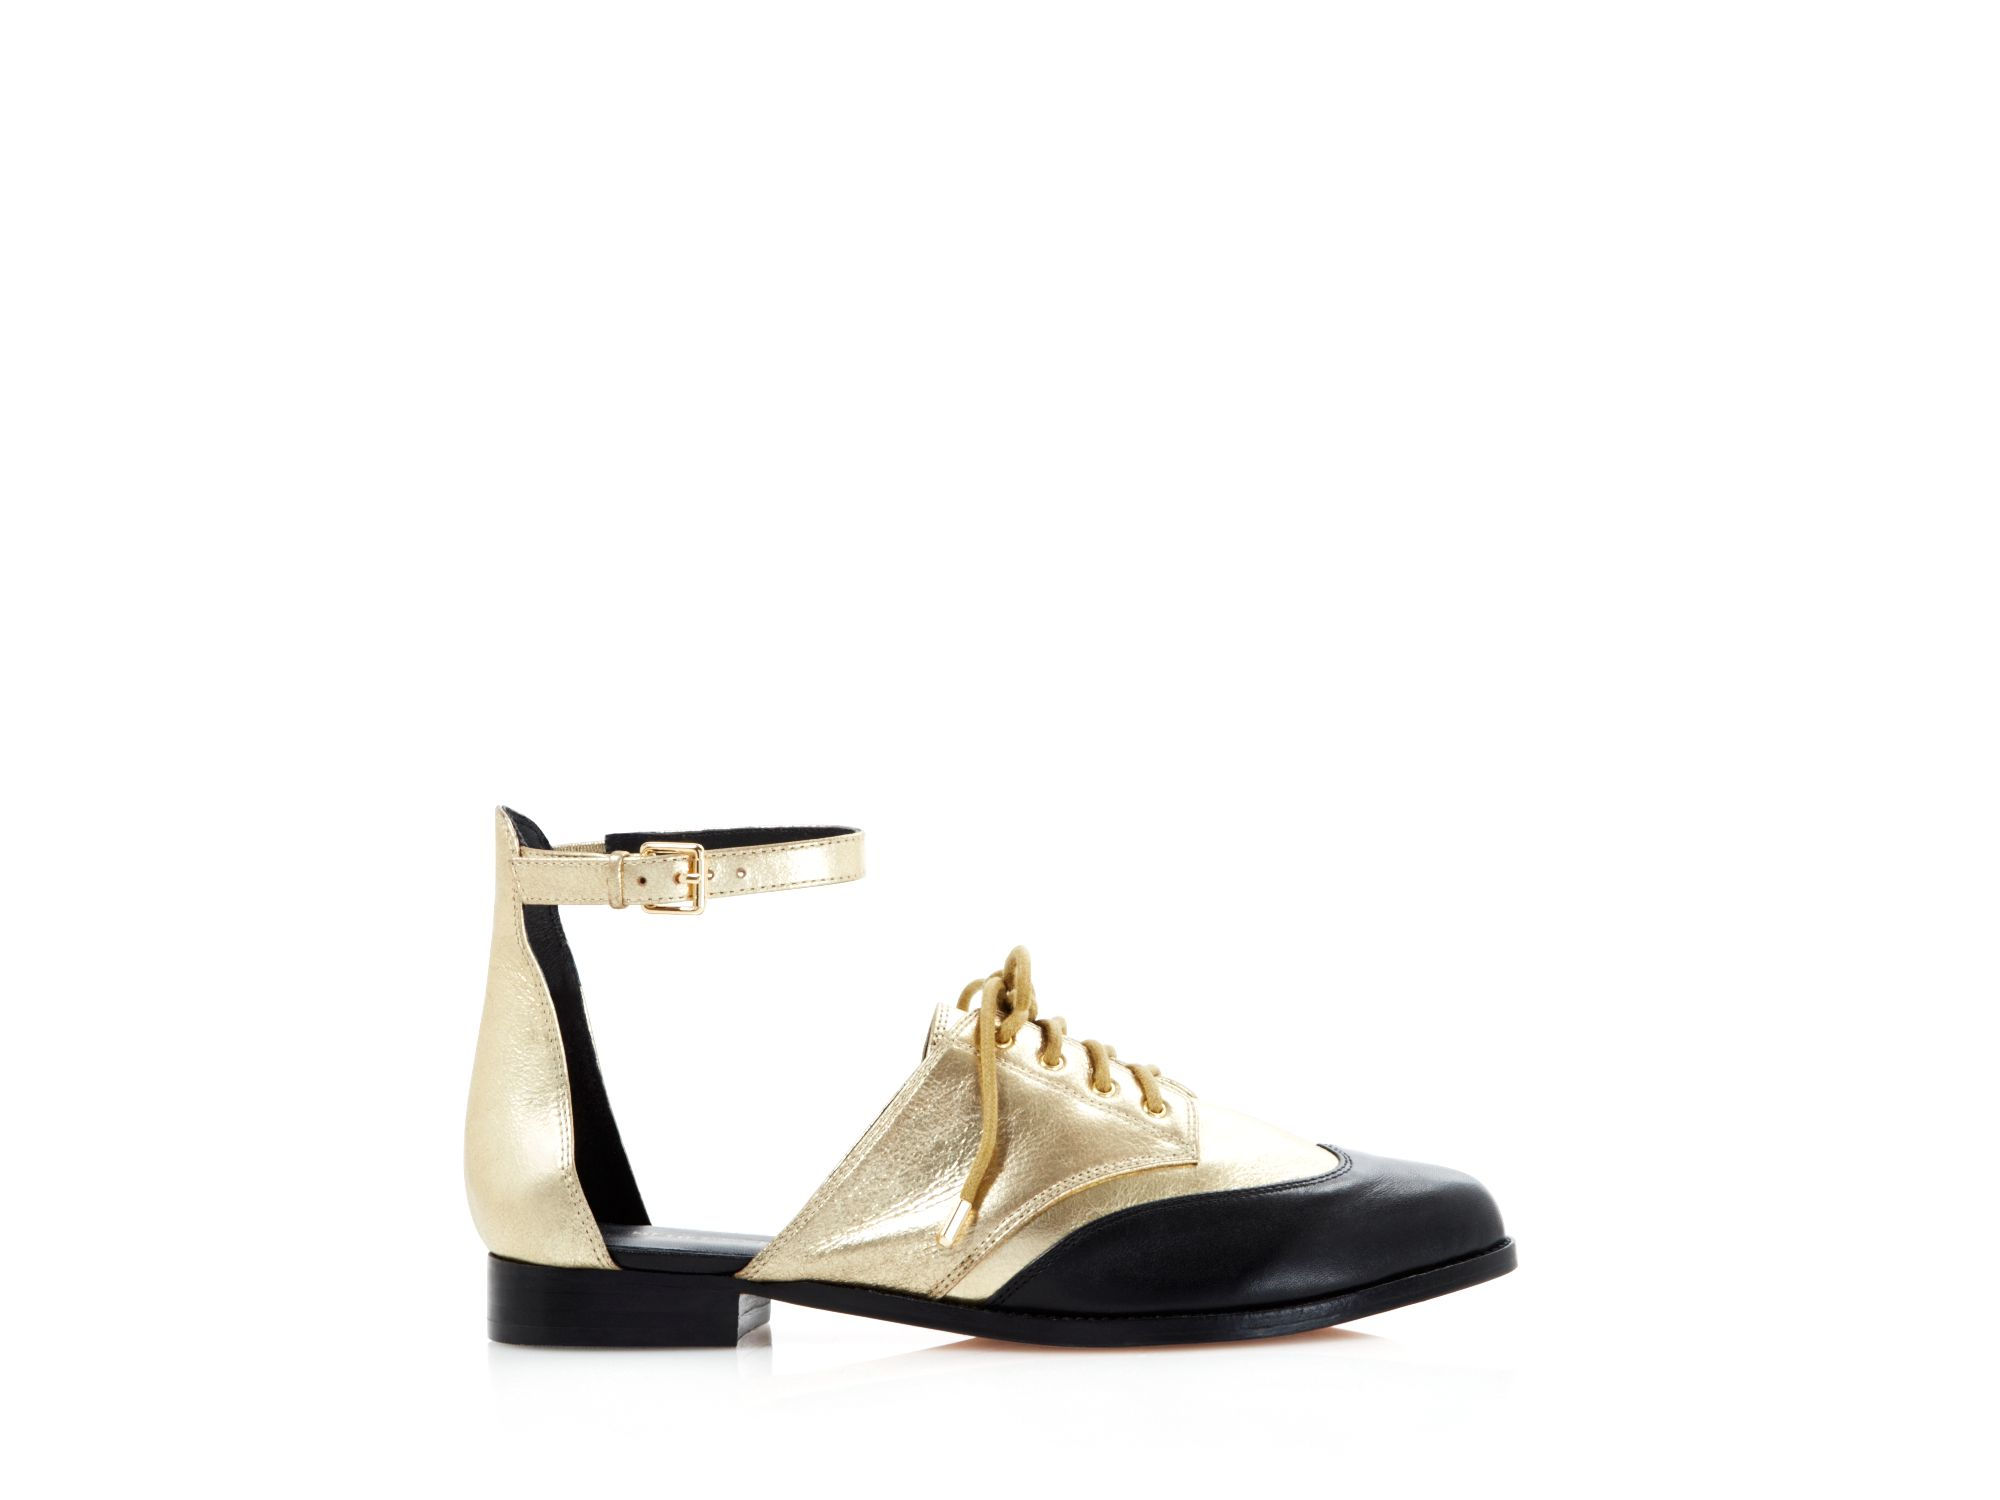 Rebecca Minkoff Metallic Ankle Strap Flats buy cheap looking for 2014 newest cheap online 4suxV